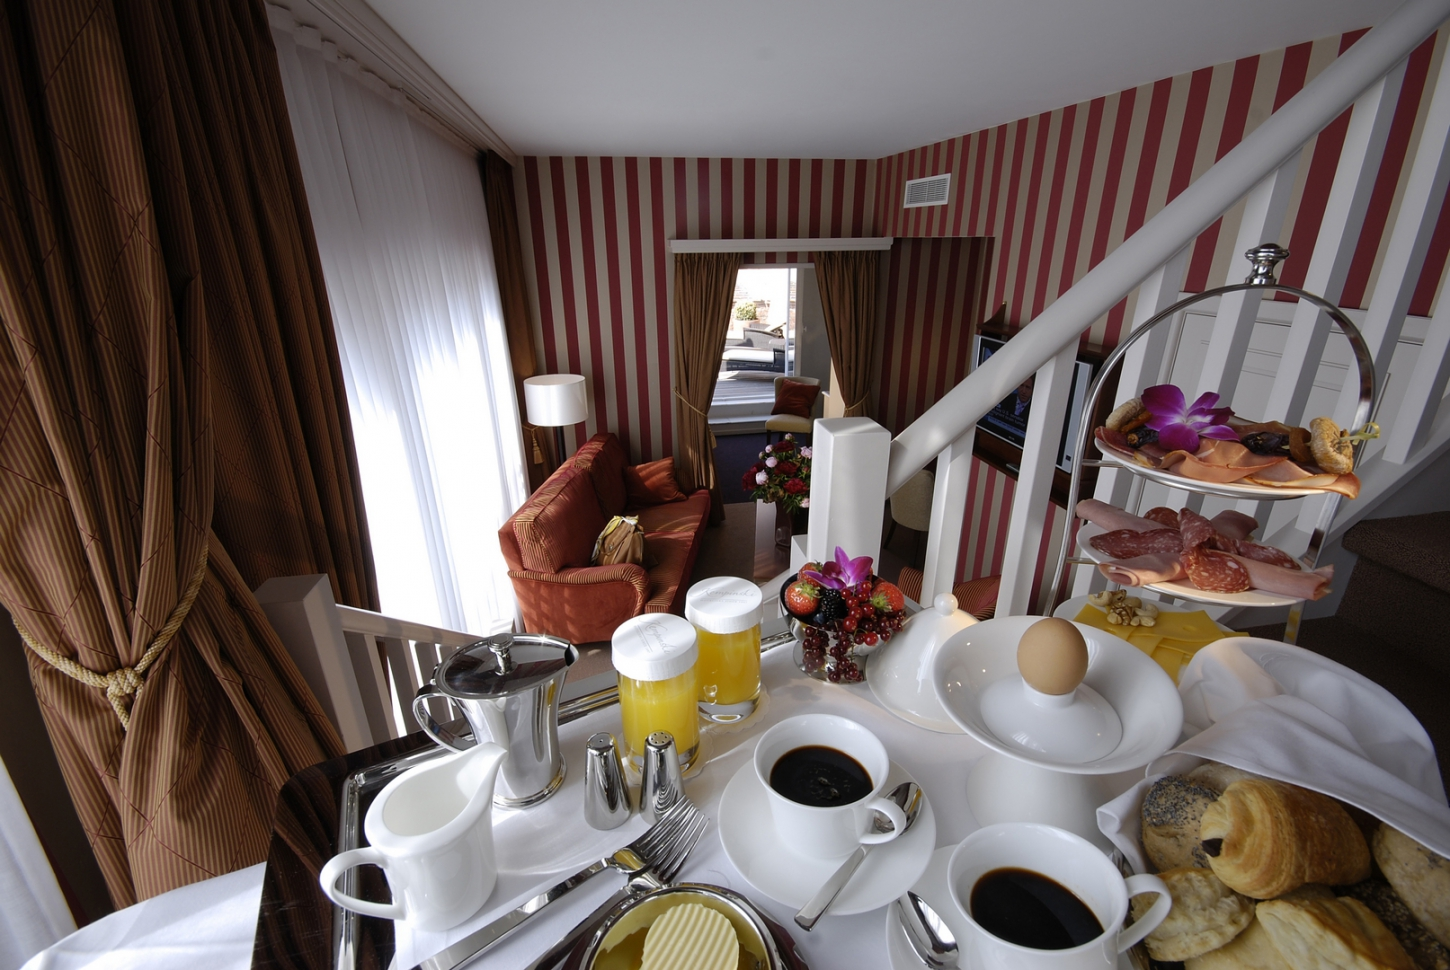 Hotel facilities: extensive breakfast buffet